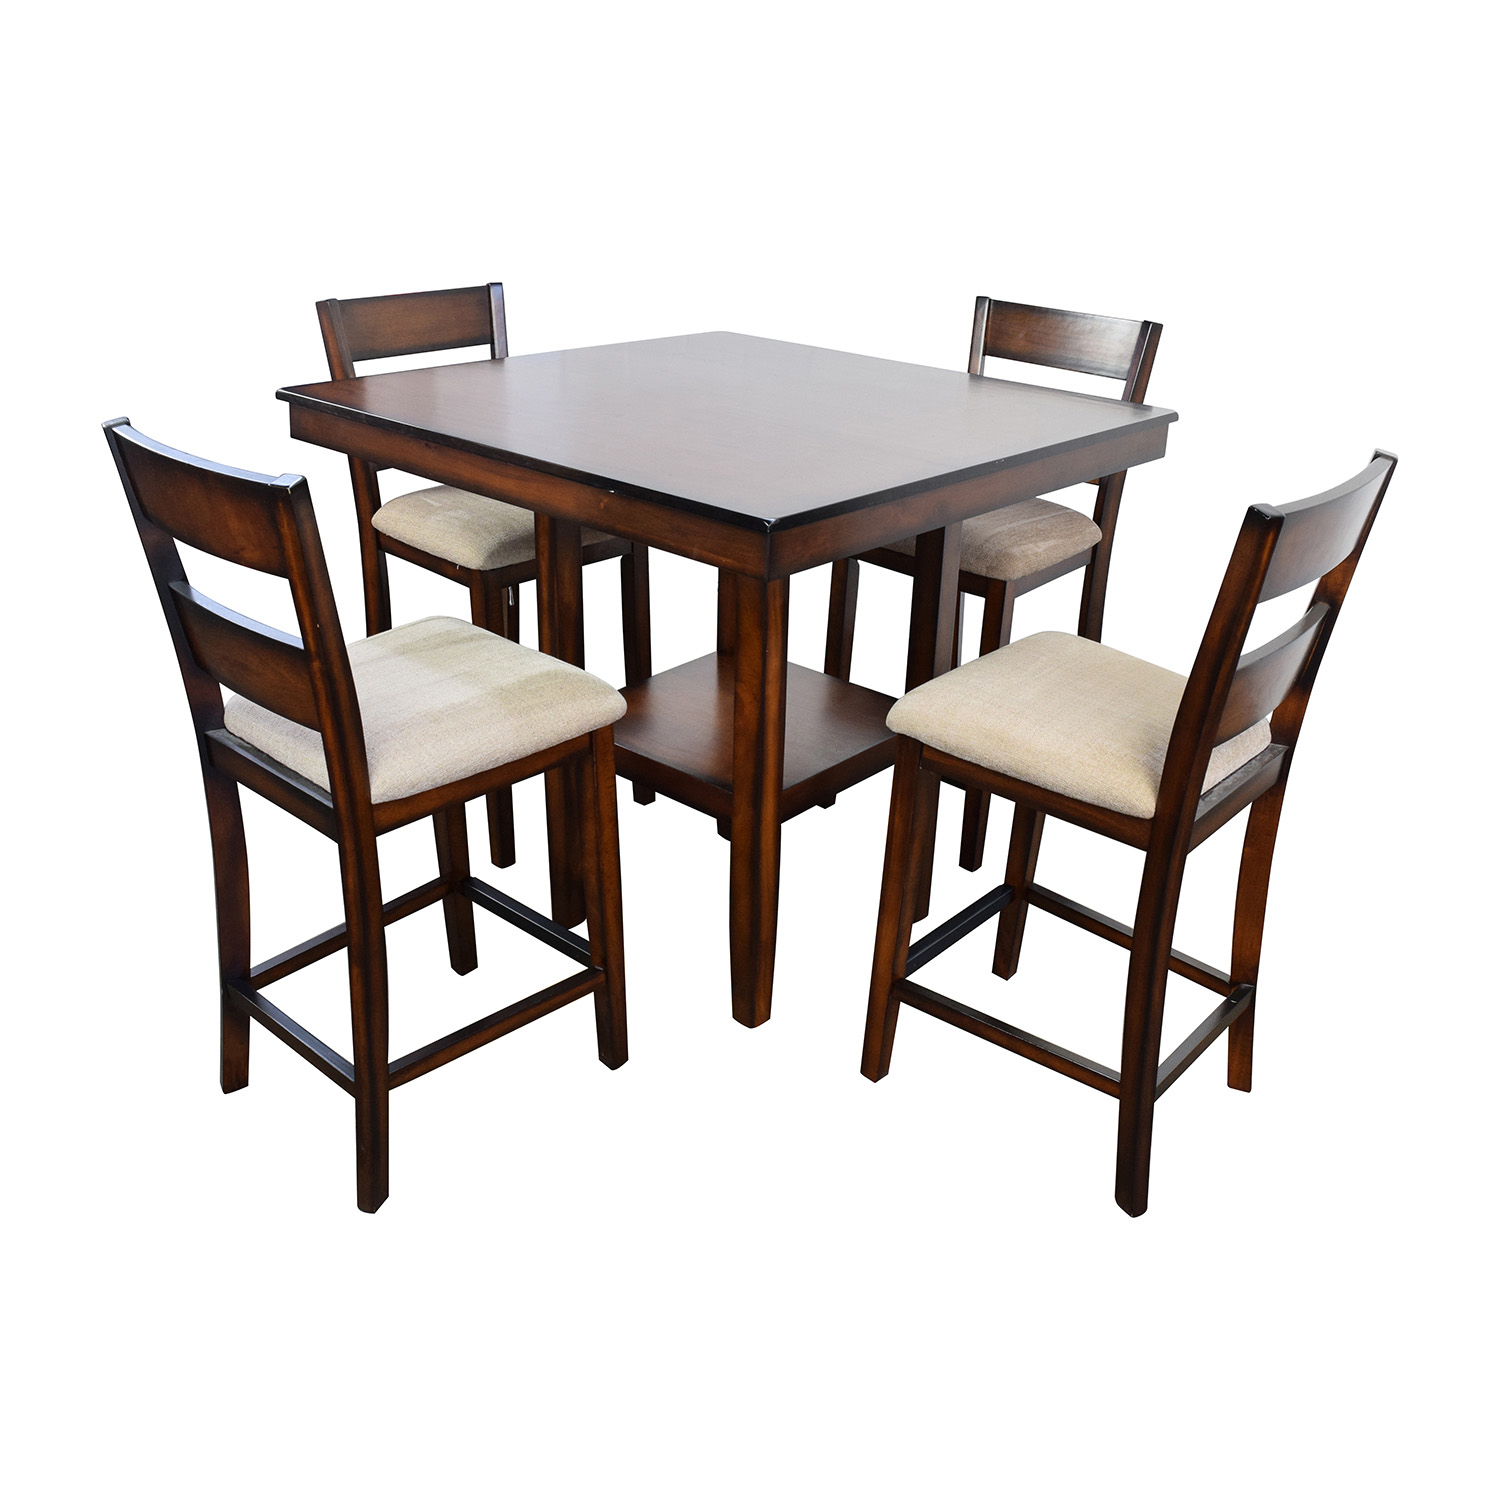 Shop Macys Macys Branton 5 Pc. Counter Height Dining Set Online ...